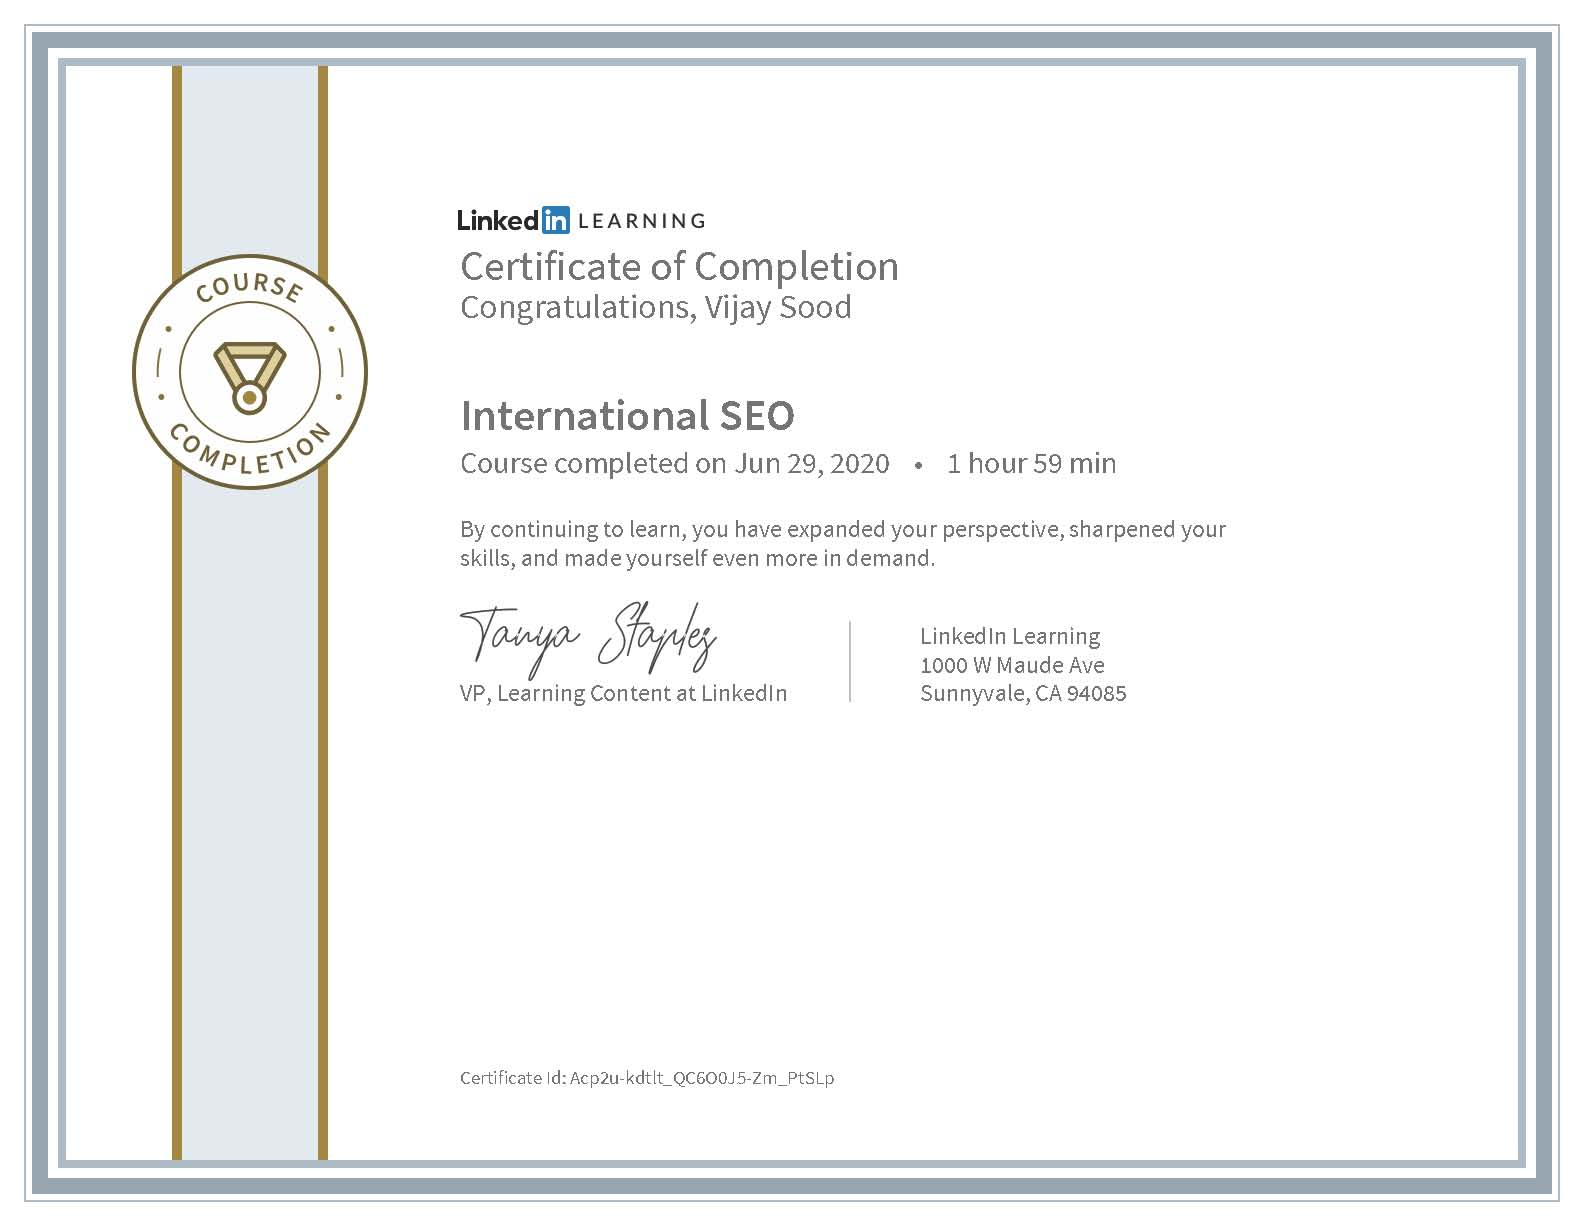 CertificateOfCompletion International SEO 1